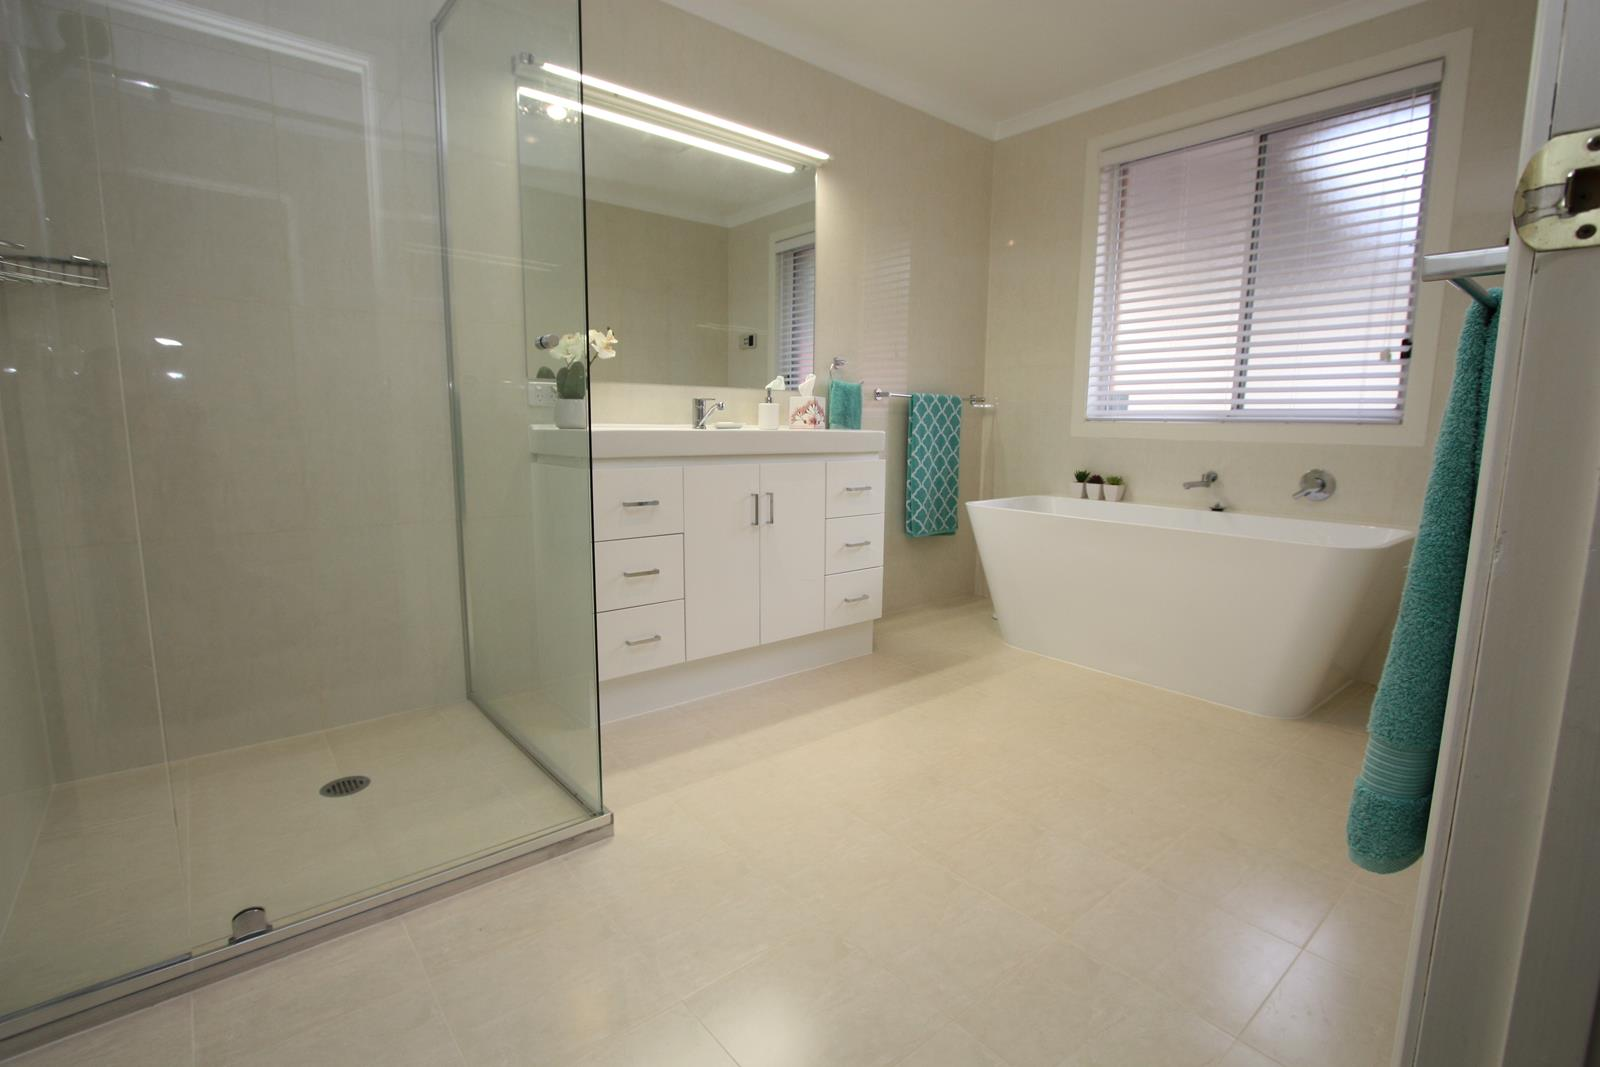 Our gallery kitchen and bathroom renovations canberra avado for Kitchen and bathroom renovations